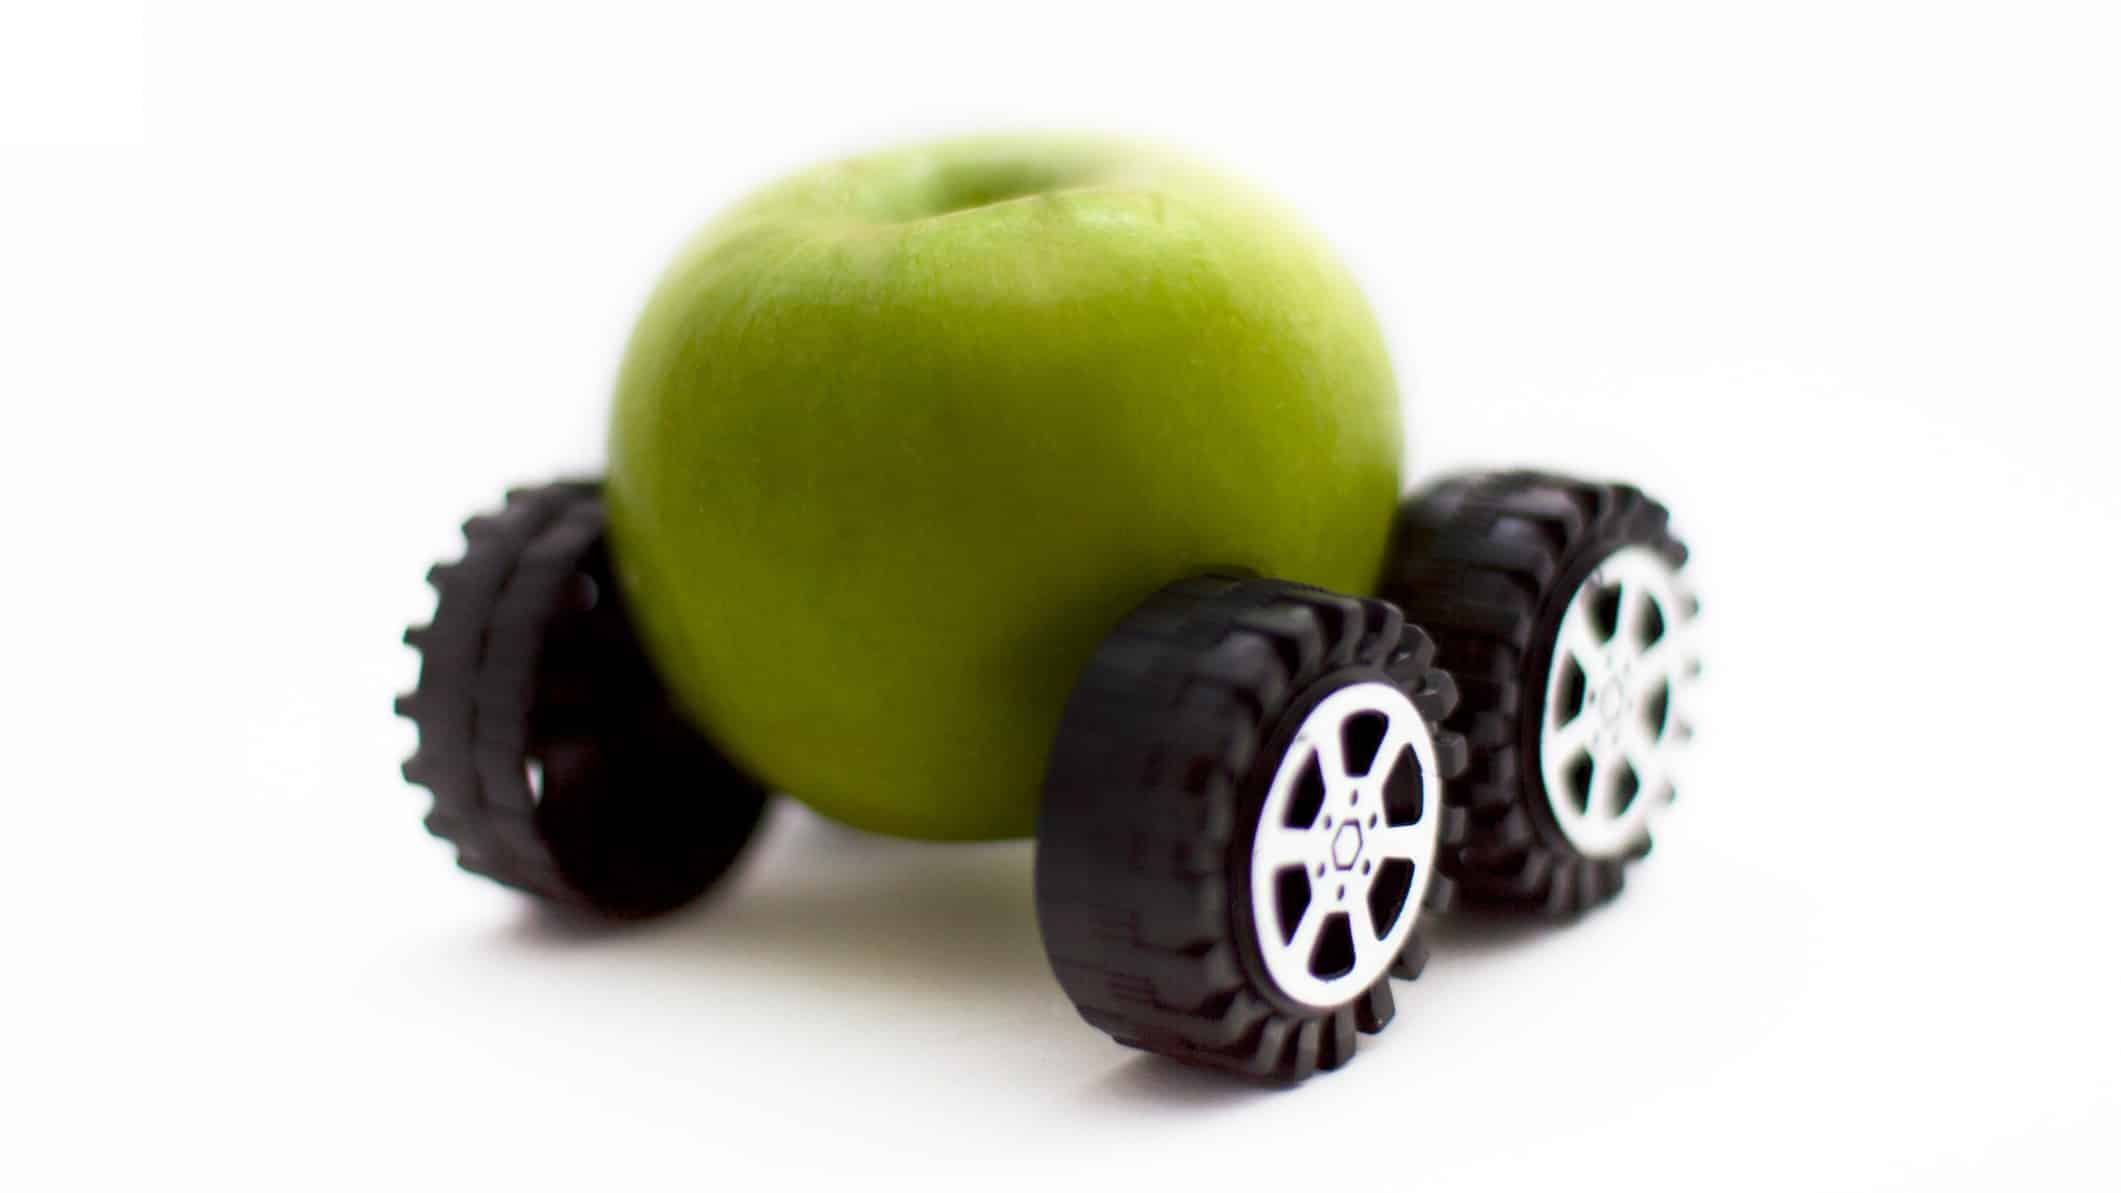 apple and tesla shares represented by image of an apple on wheels